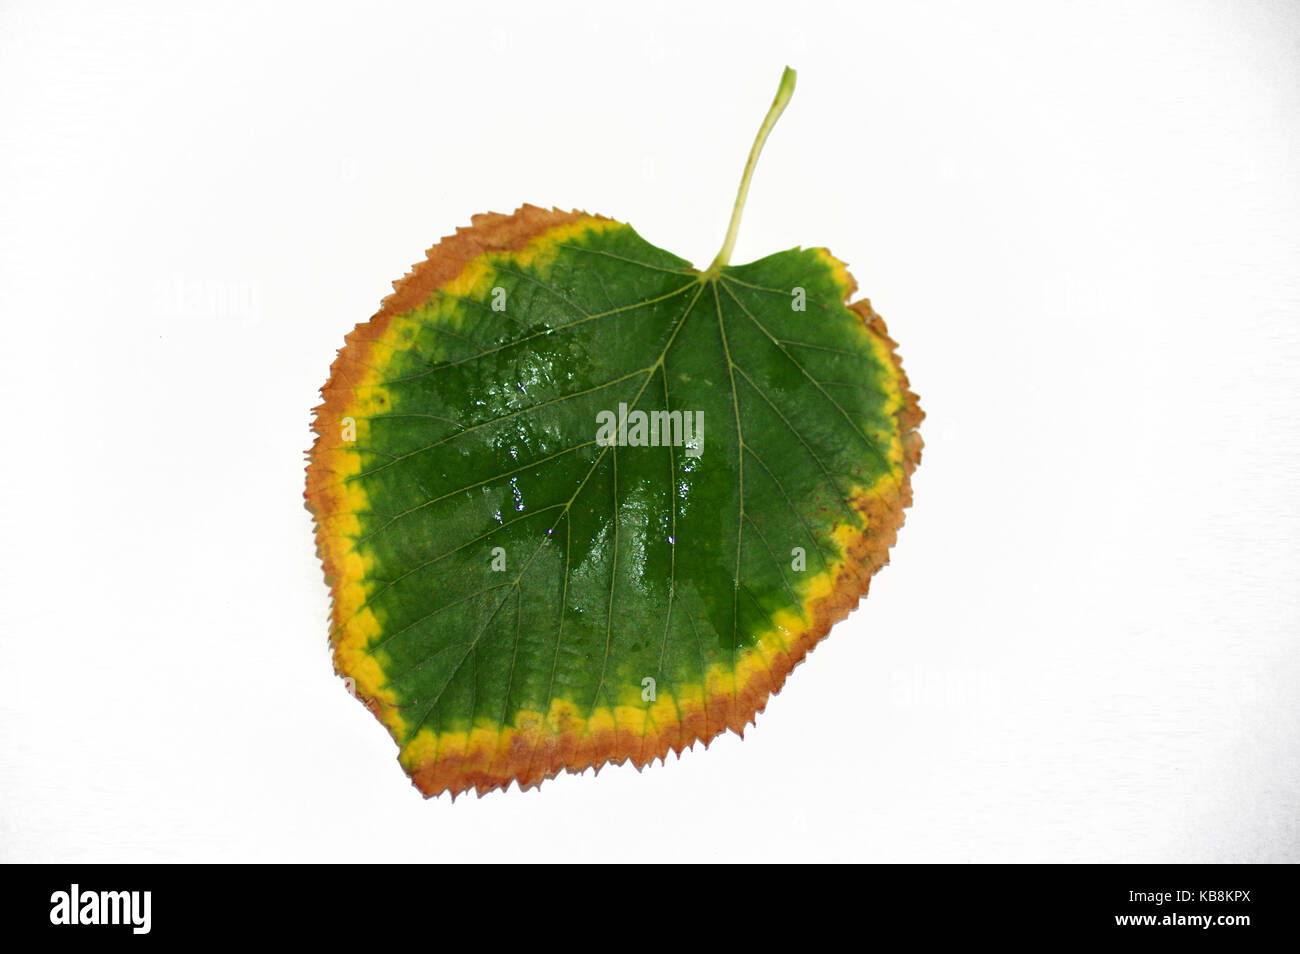 Lime tree leaf in autumn on white background - Stock Image